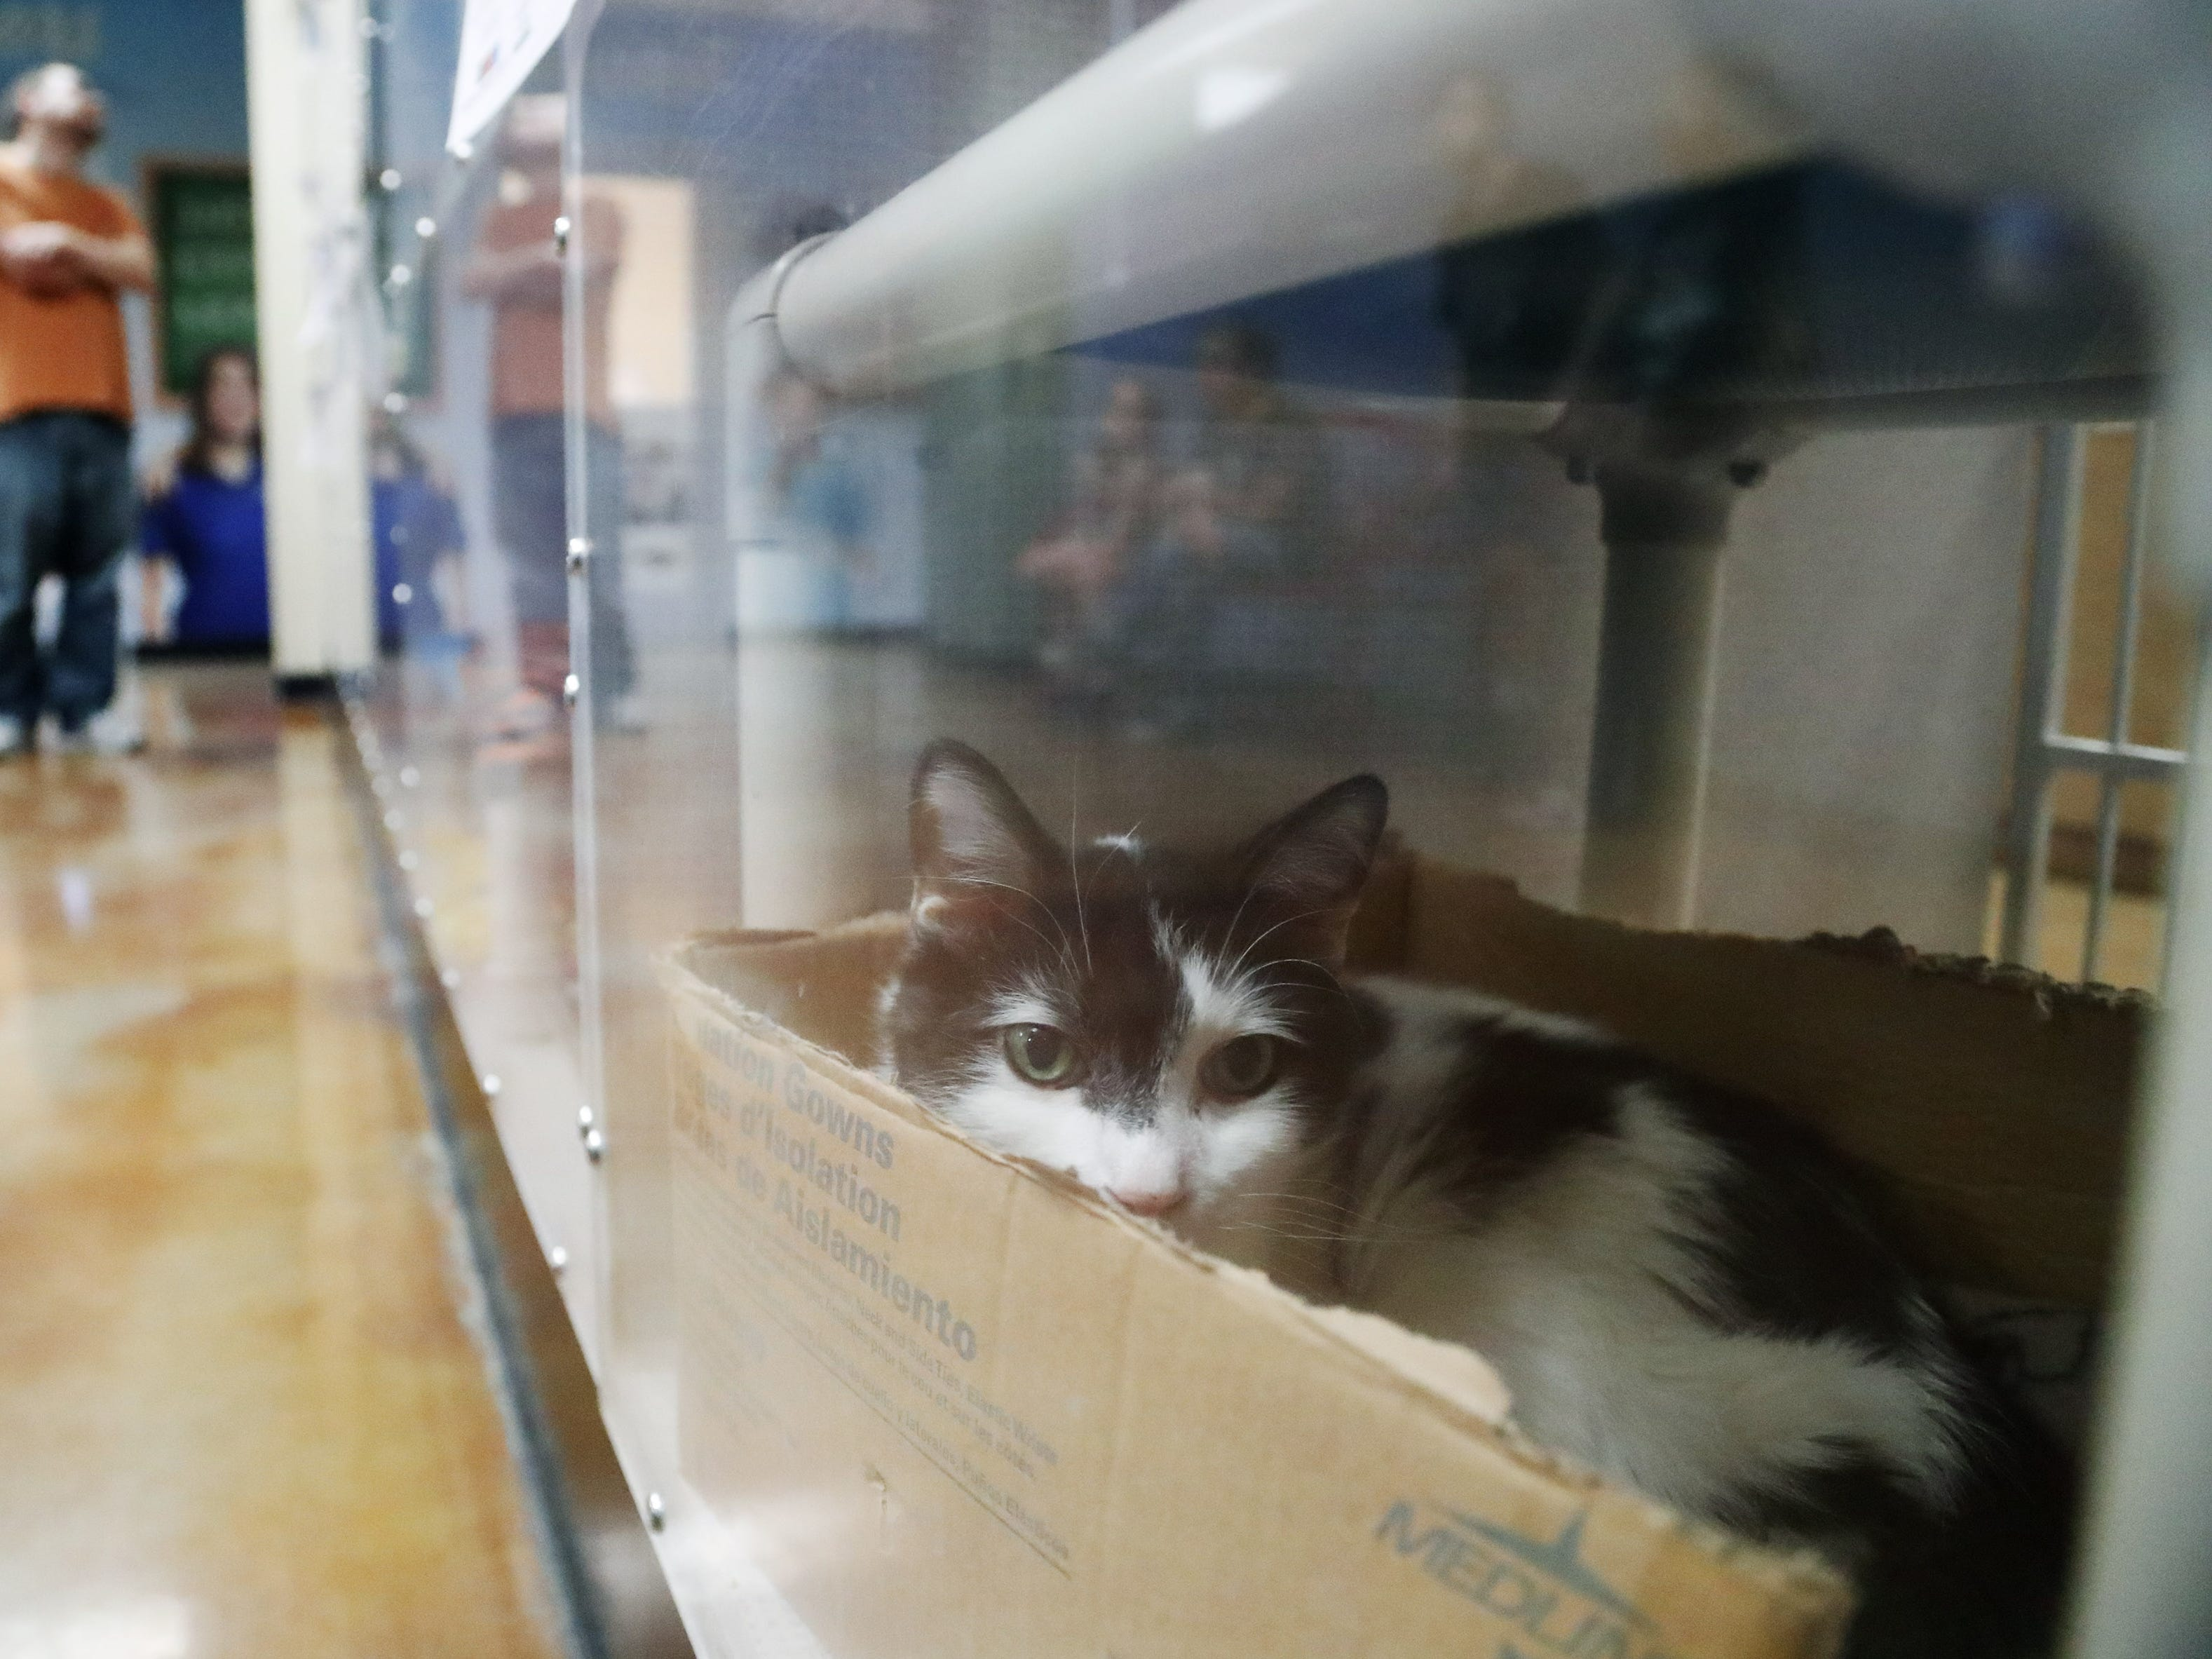 Azriel, a domestic medium hair, waits to be adopted at the Arizona Humane Society in Phoenix on April 1, 2019. More than 8,000 dogs and cats have been surrendered in Maricopa County since the start of the year.